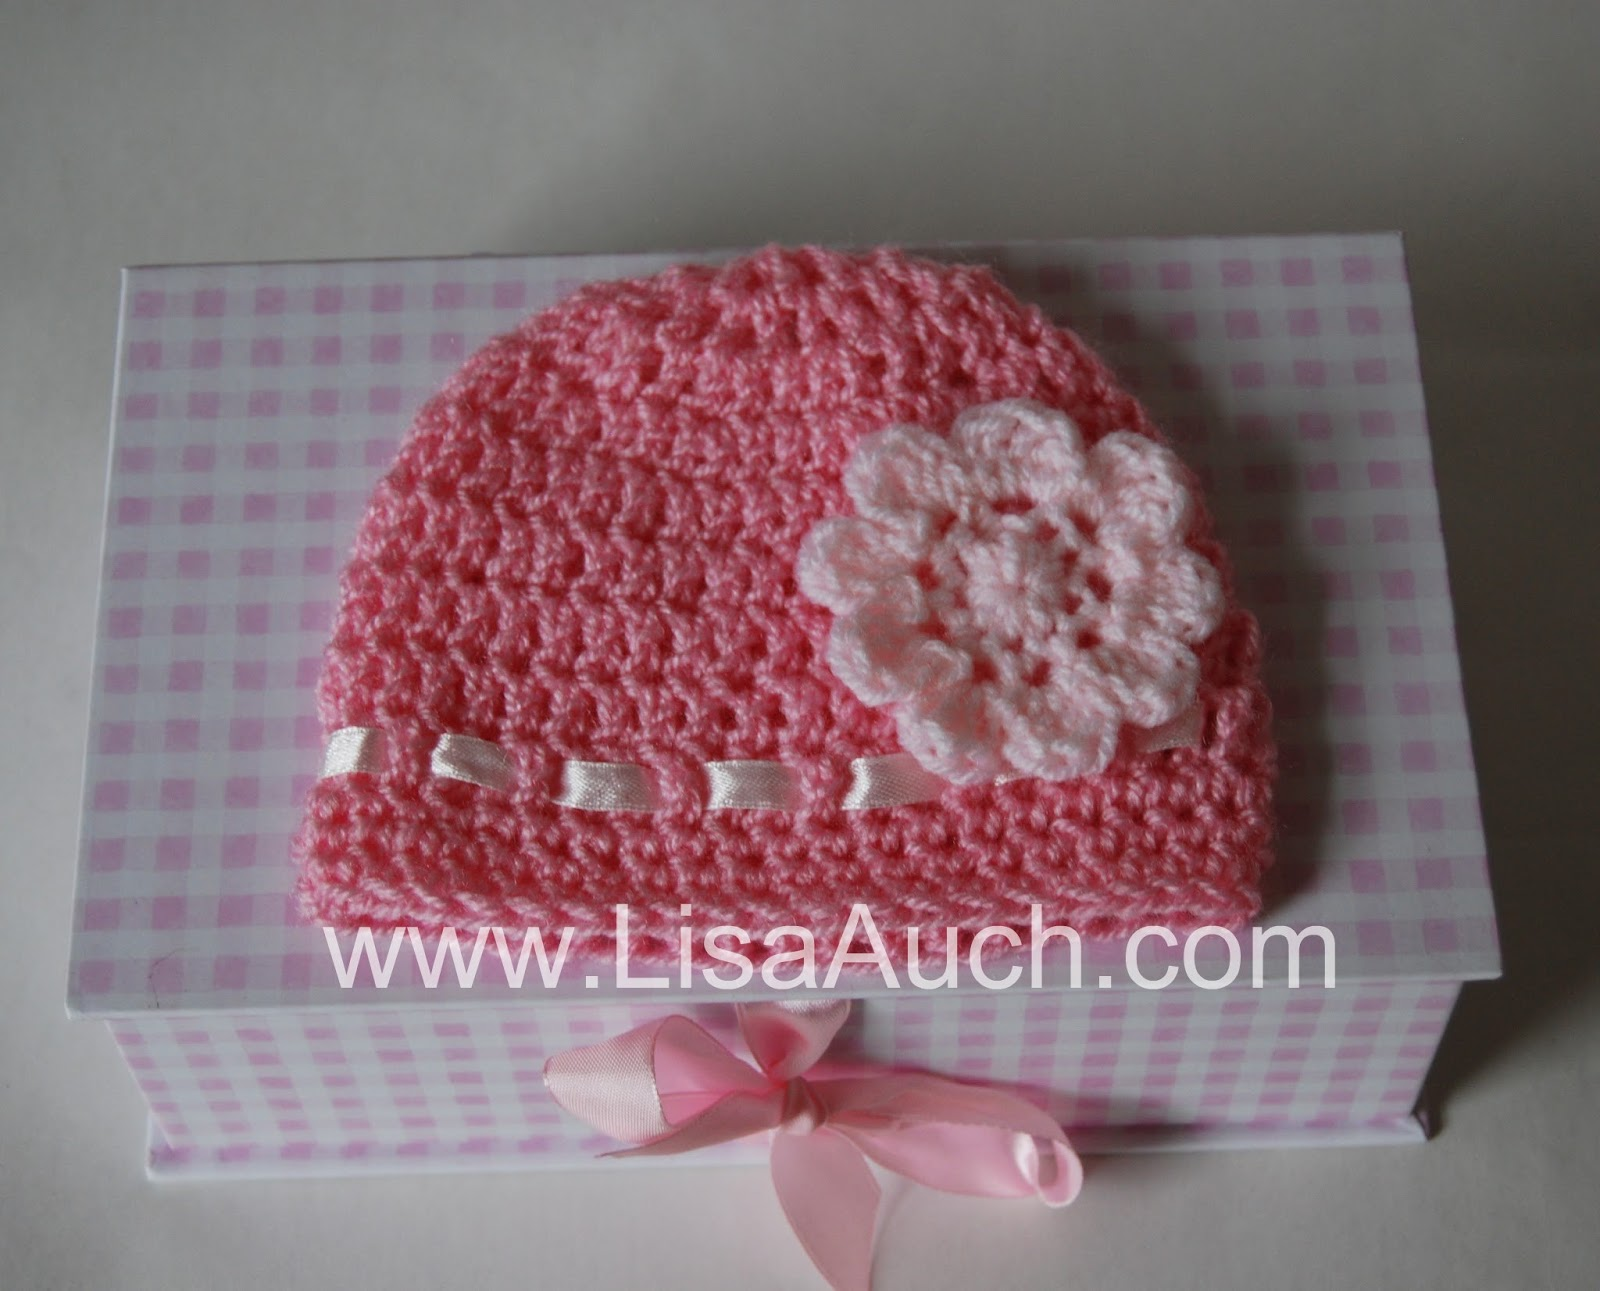 Crochet Child Hat Pattern Free : free crochet baby hat patterns Car Tuning